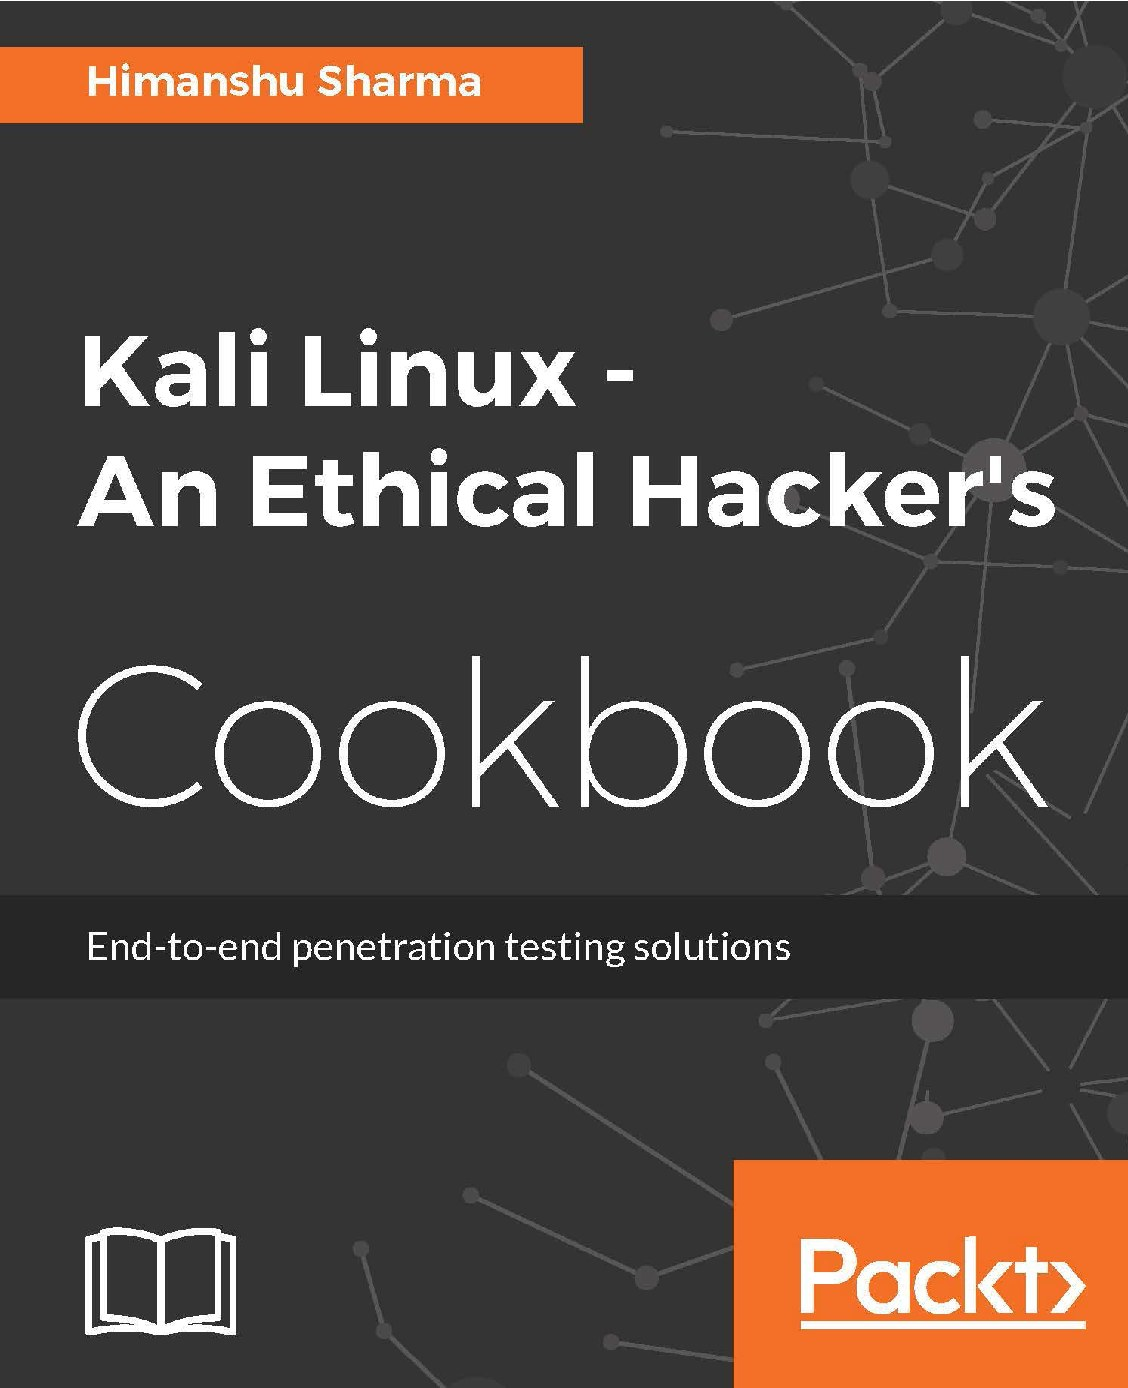 Kali Linux an Ethical Hacker's Cookbook